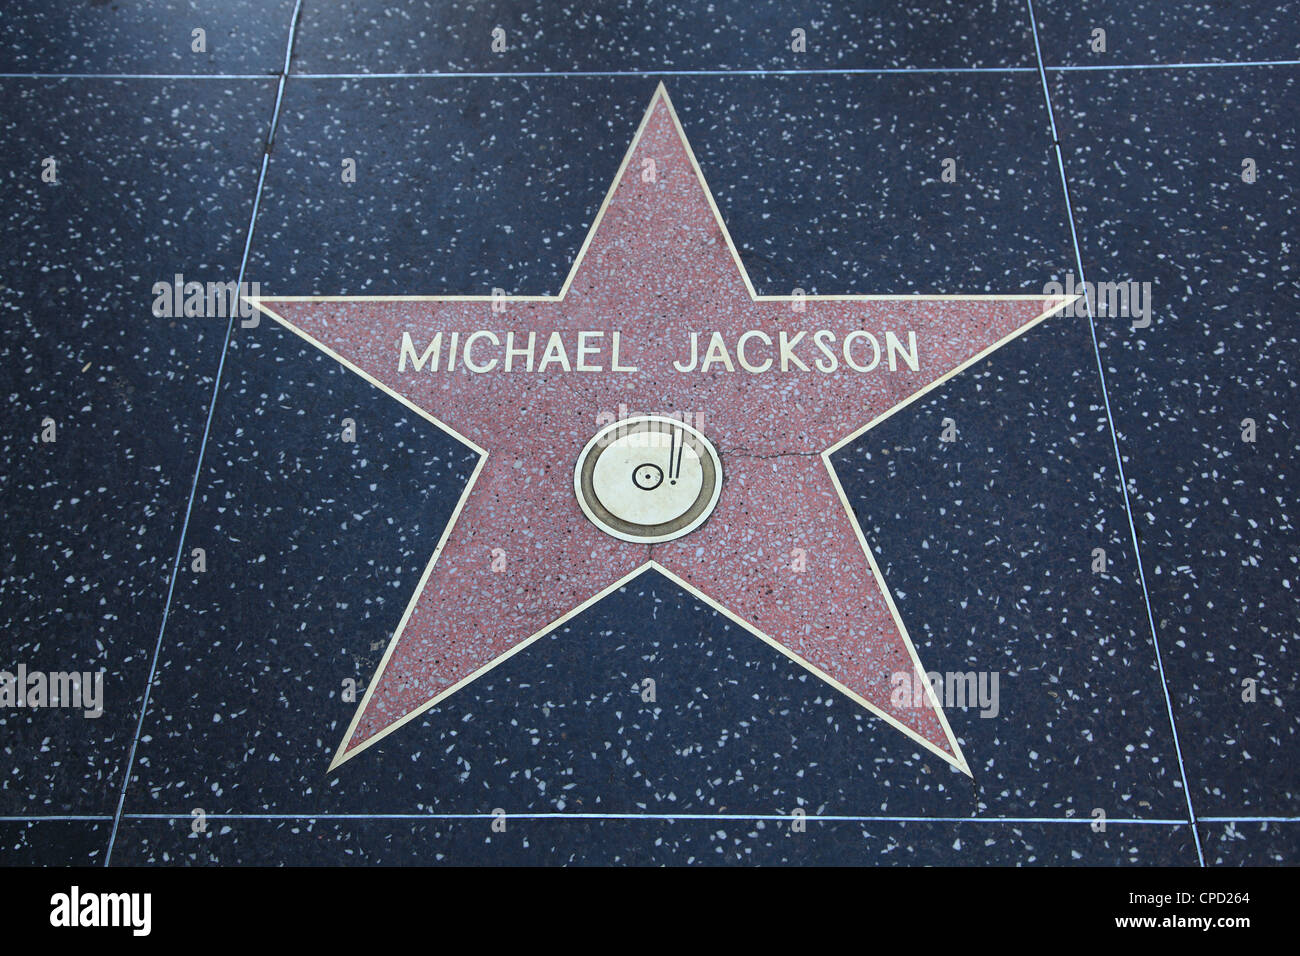 Michael Jackson, Star, Hollywood Walk of Fame, Hollywood Boulevard, Hollywood, Los Angeles, Kalifornien, USA Stockbild